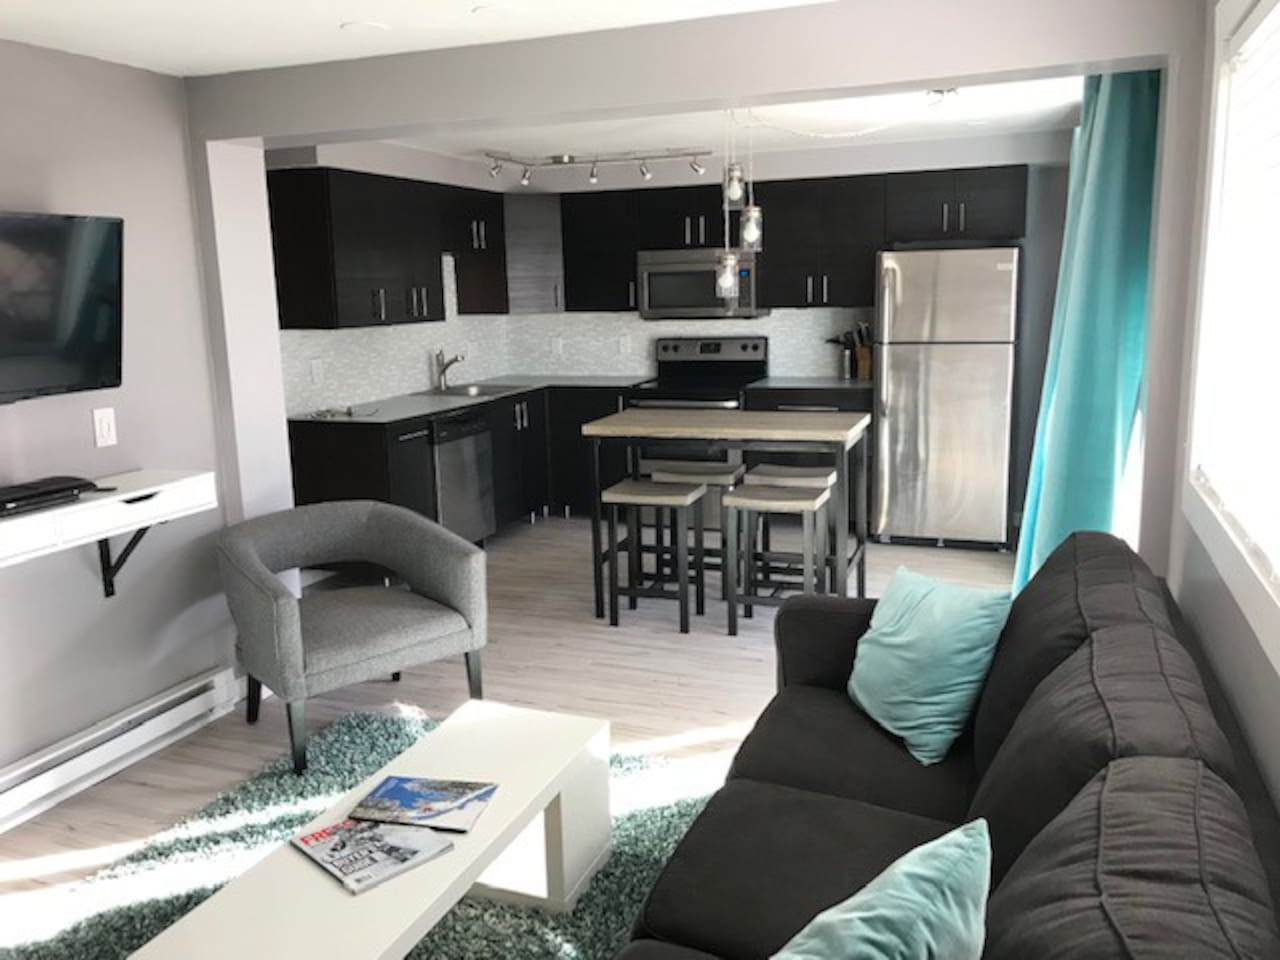 Remodeled kitchen with new appliances and everything you need for meal prep.  Couch pulls out to sleep 2.